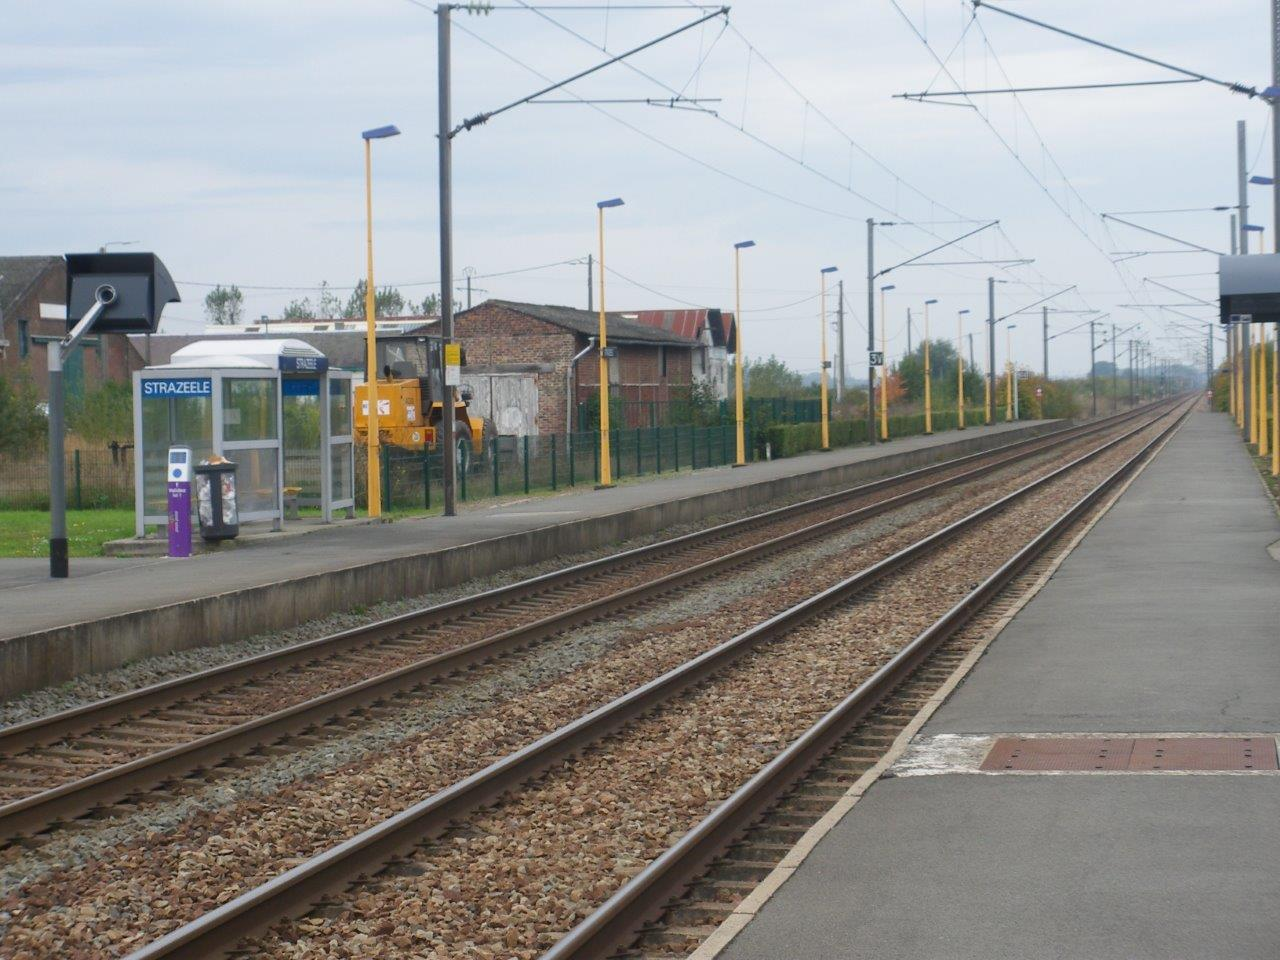 gare-de-strazeele-train-station